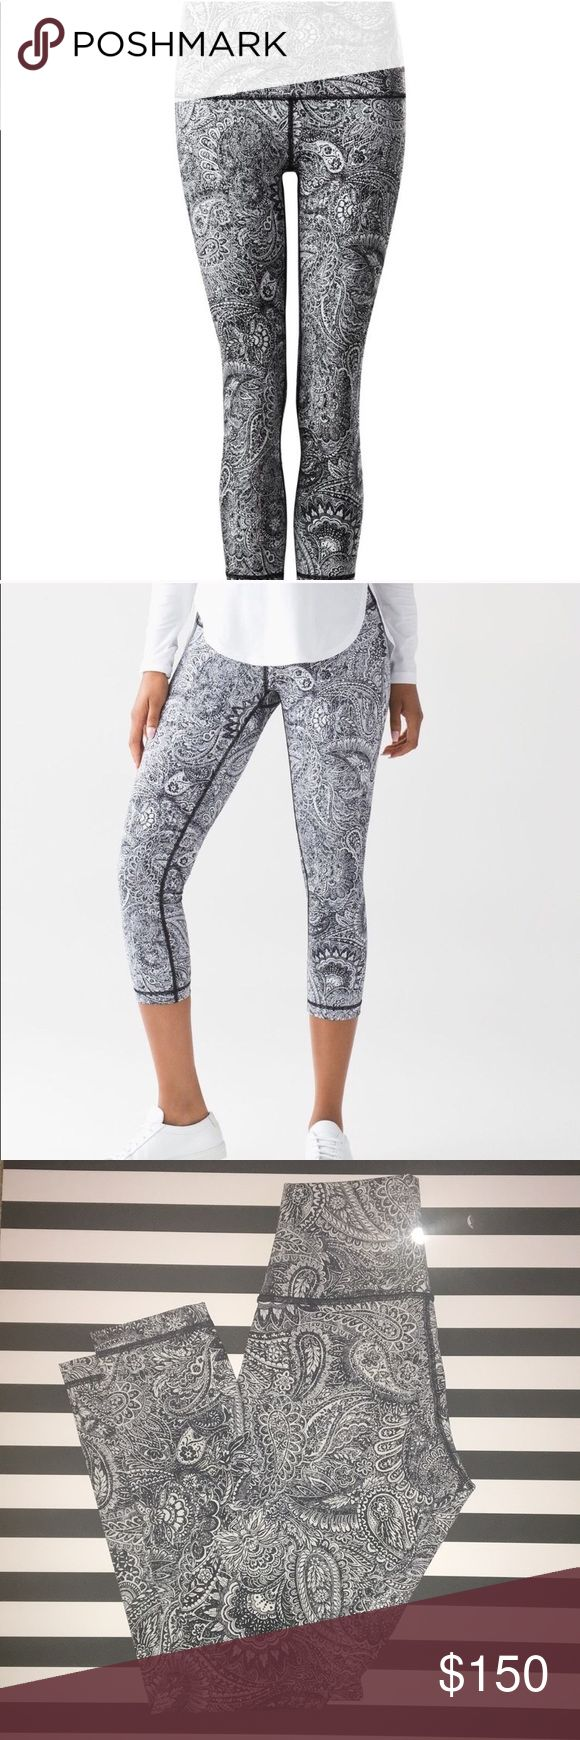 Lululemon wunder under antique paisley leggings 4 In perfect condition. Size 4. Inseam is 25. Very stretchy and comfy. I just don't need these that's all. Rare and hard to find lululemon athletica Pants Leggings